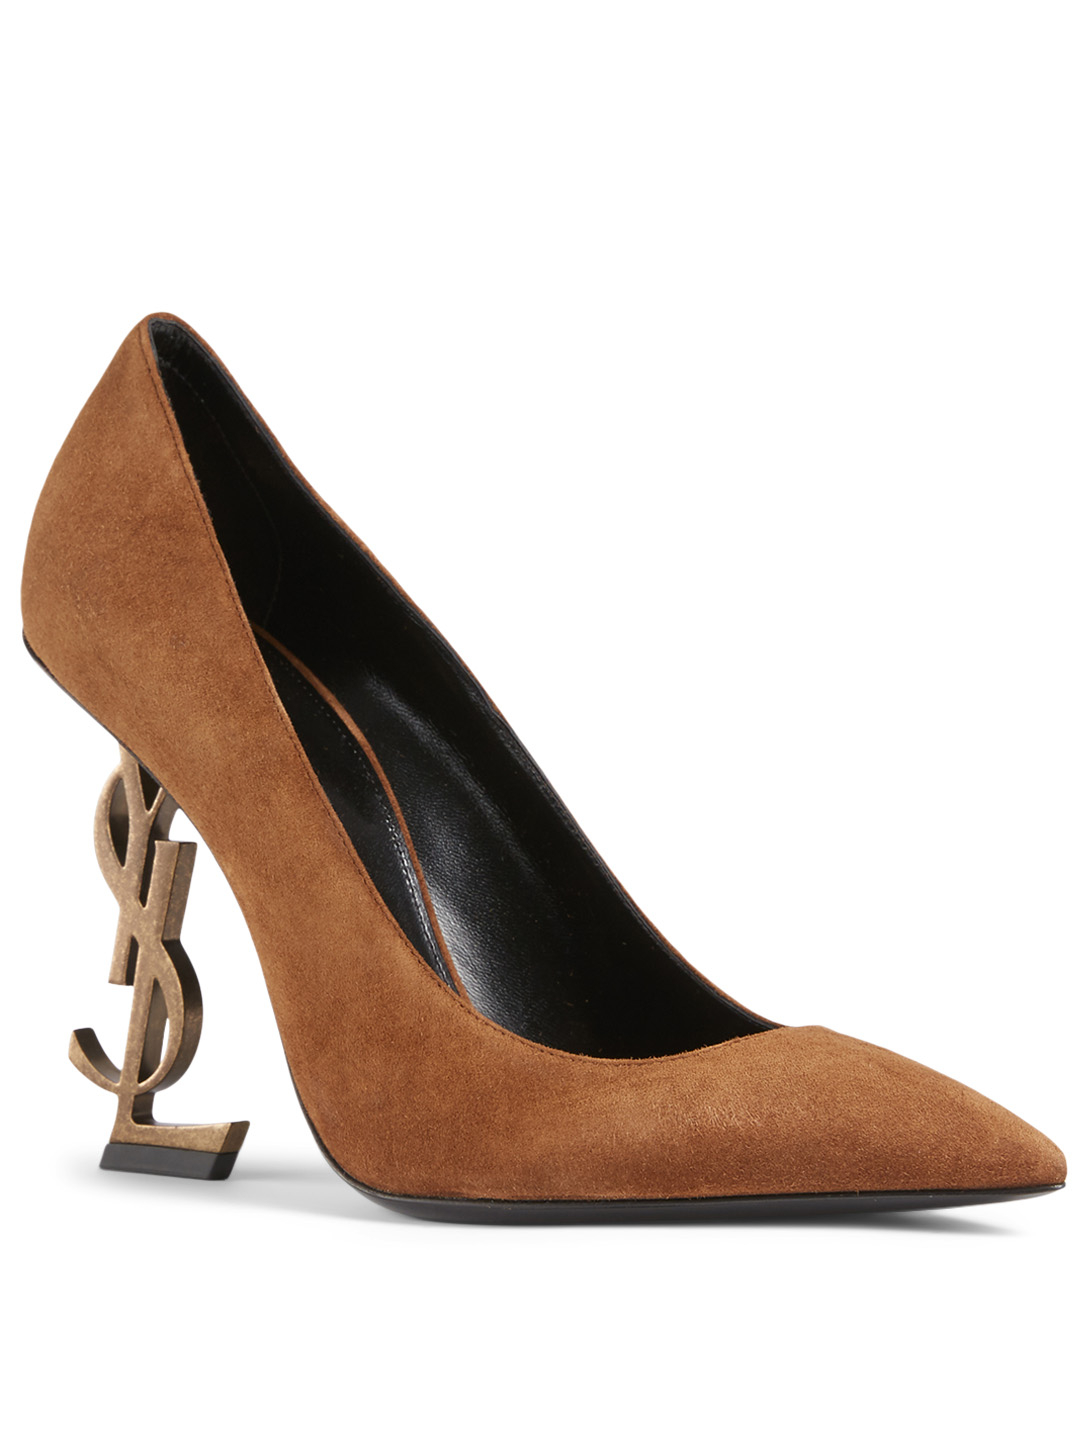 SAINT LAURENT Opyum Suede YSL Heeled Pumps Women's Brown